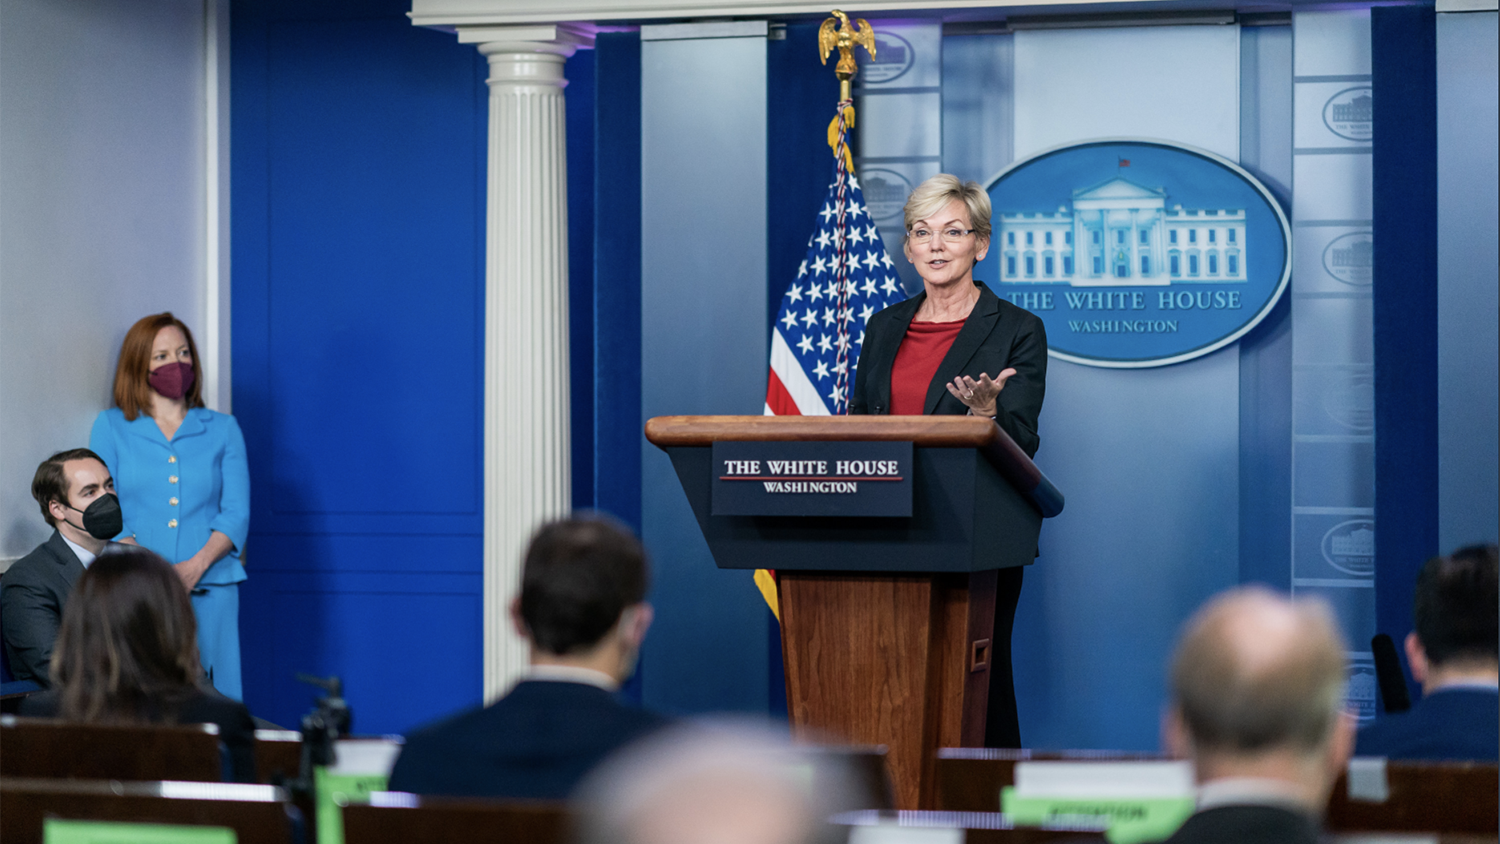 woman standing at podium in White House press room